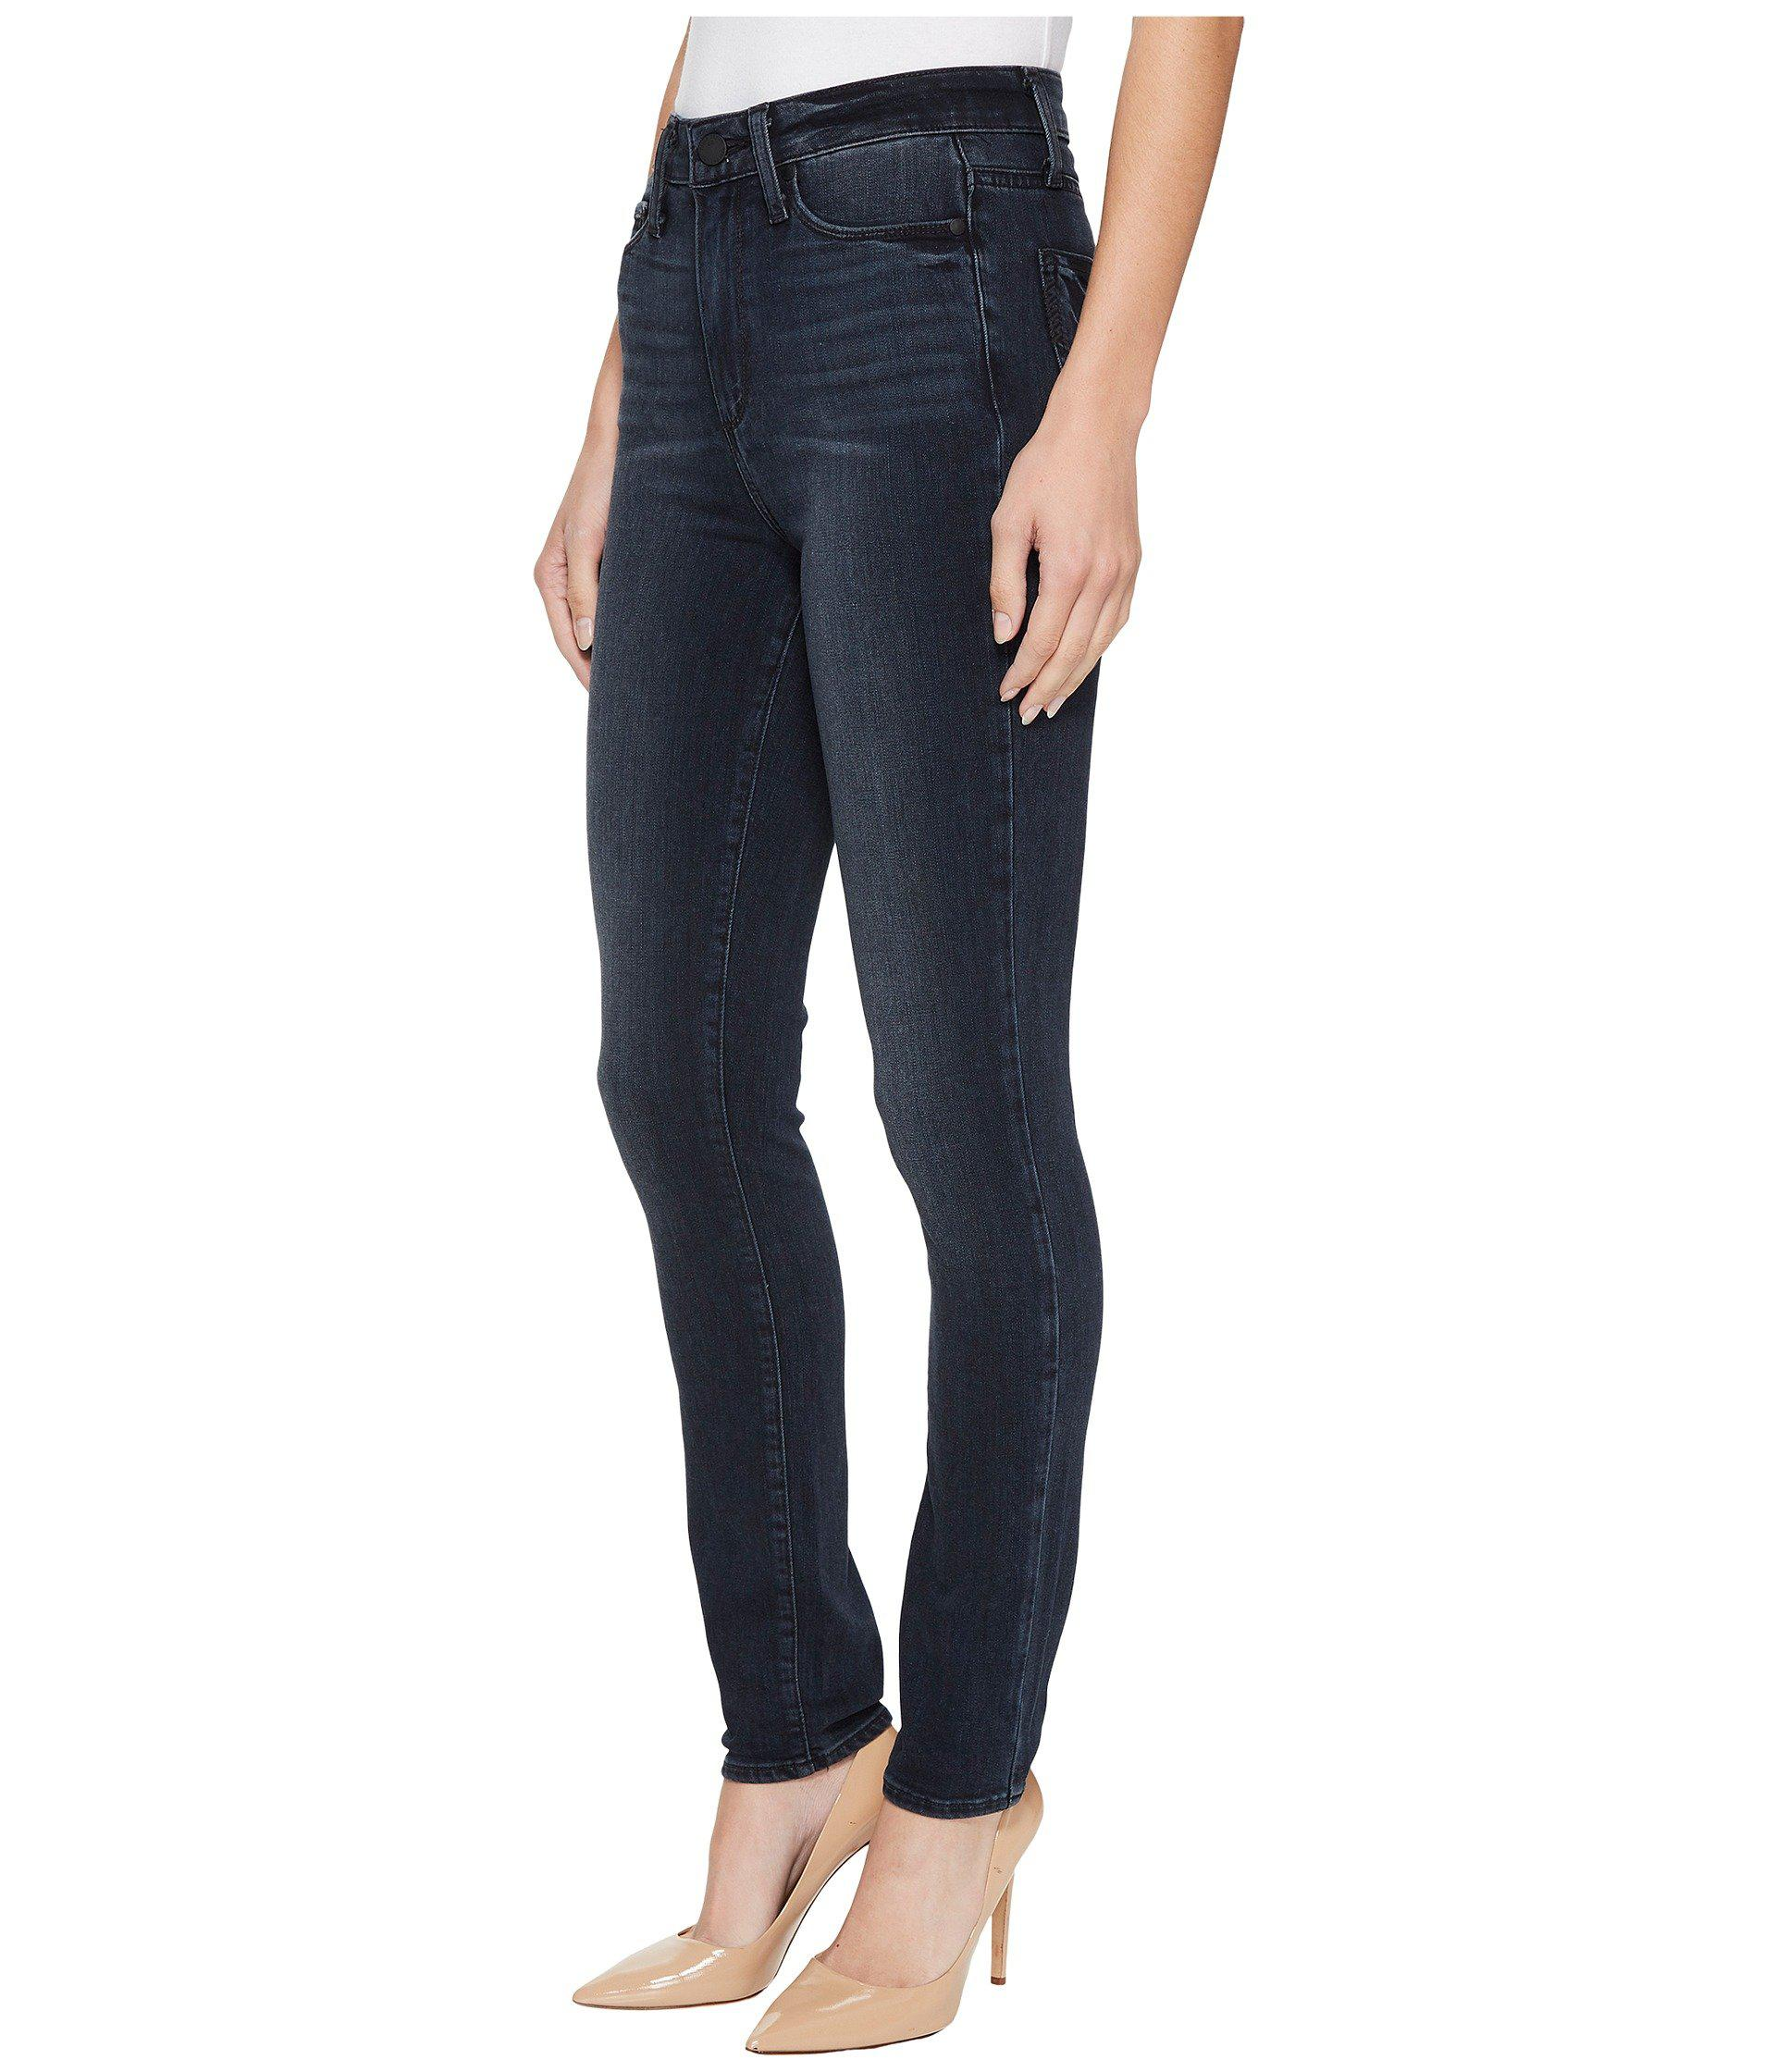 3b93f93c36 Lyst - PAIGE Margot Ultra Skinny In Rowena in Blue - Save 37%